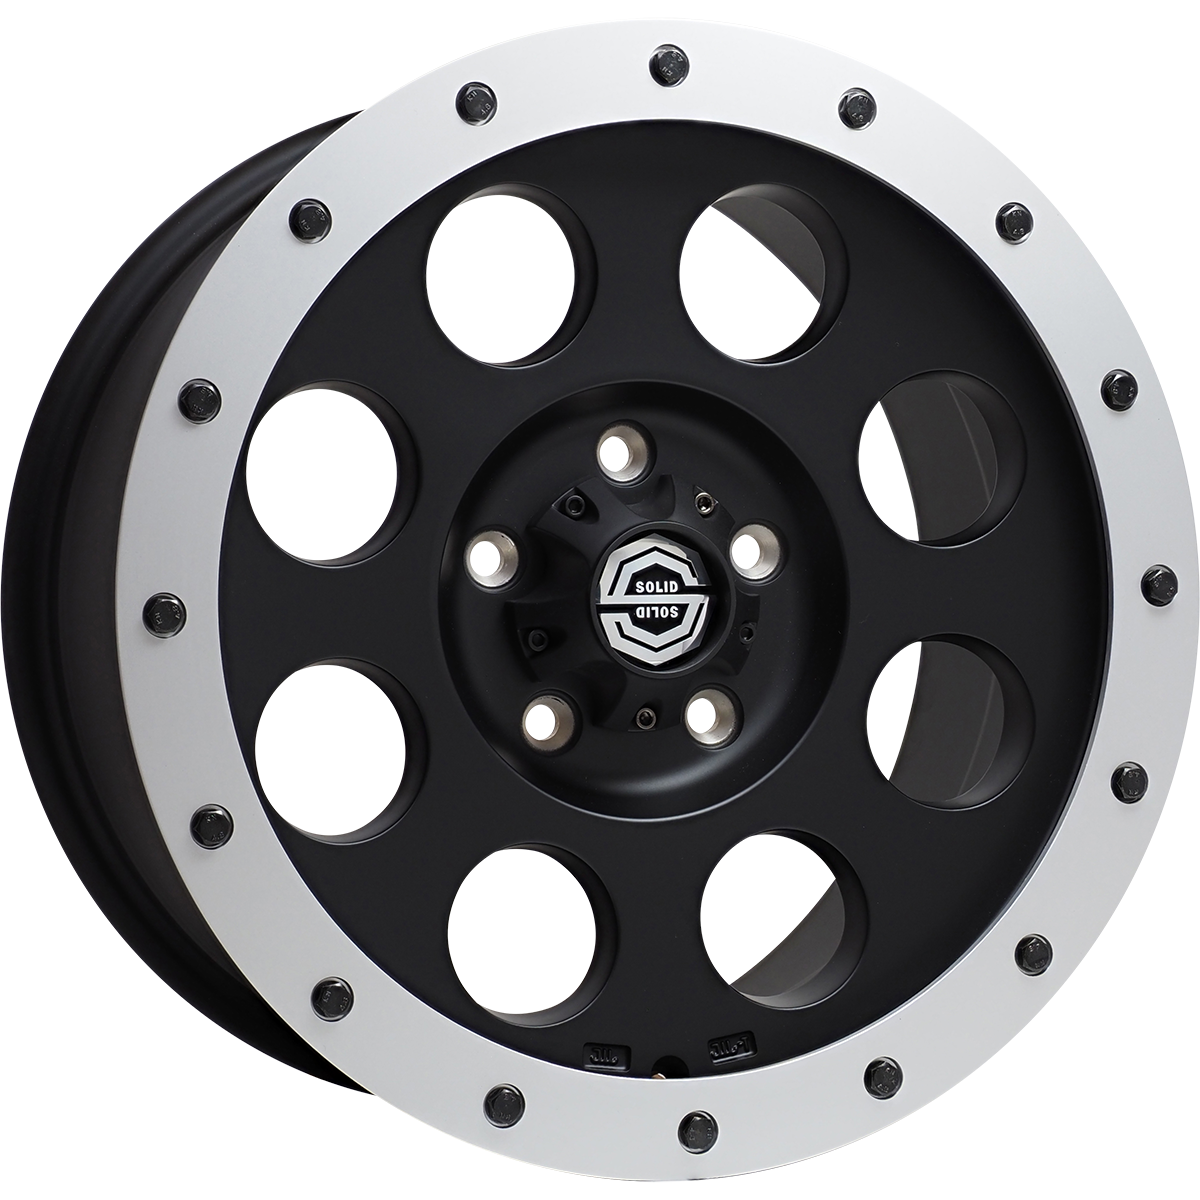 <br>size:17x8.0 127/5H +40<br>wheel color:SOLID BLACK<br>ring color:SOLID SILVER<br>note:アルミリング付<br>note:ブラックボルト<br>